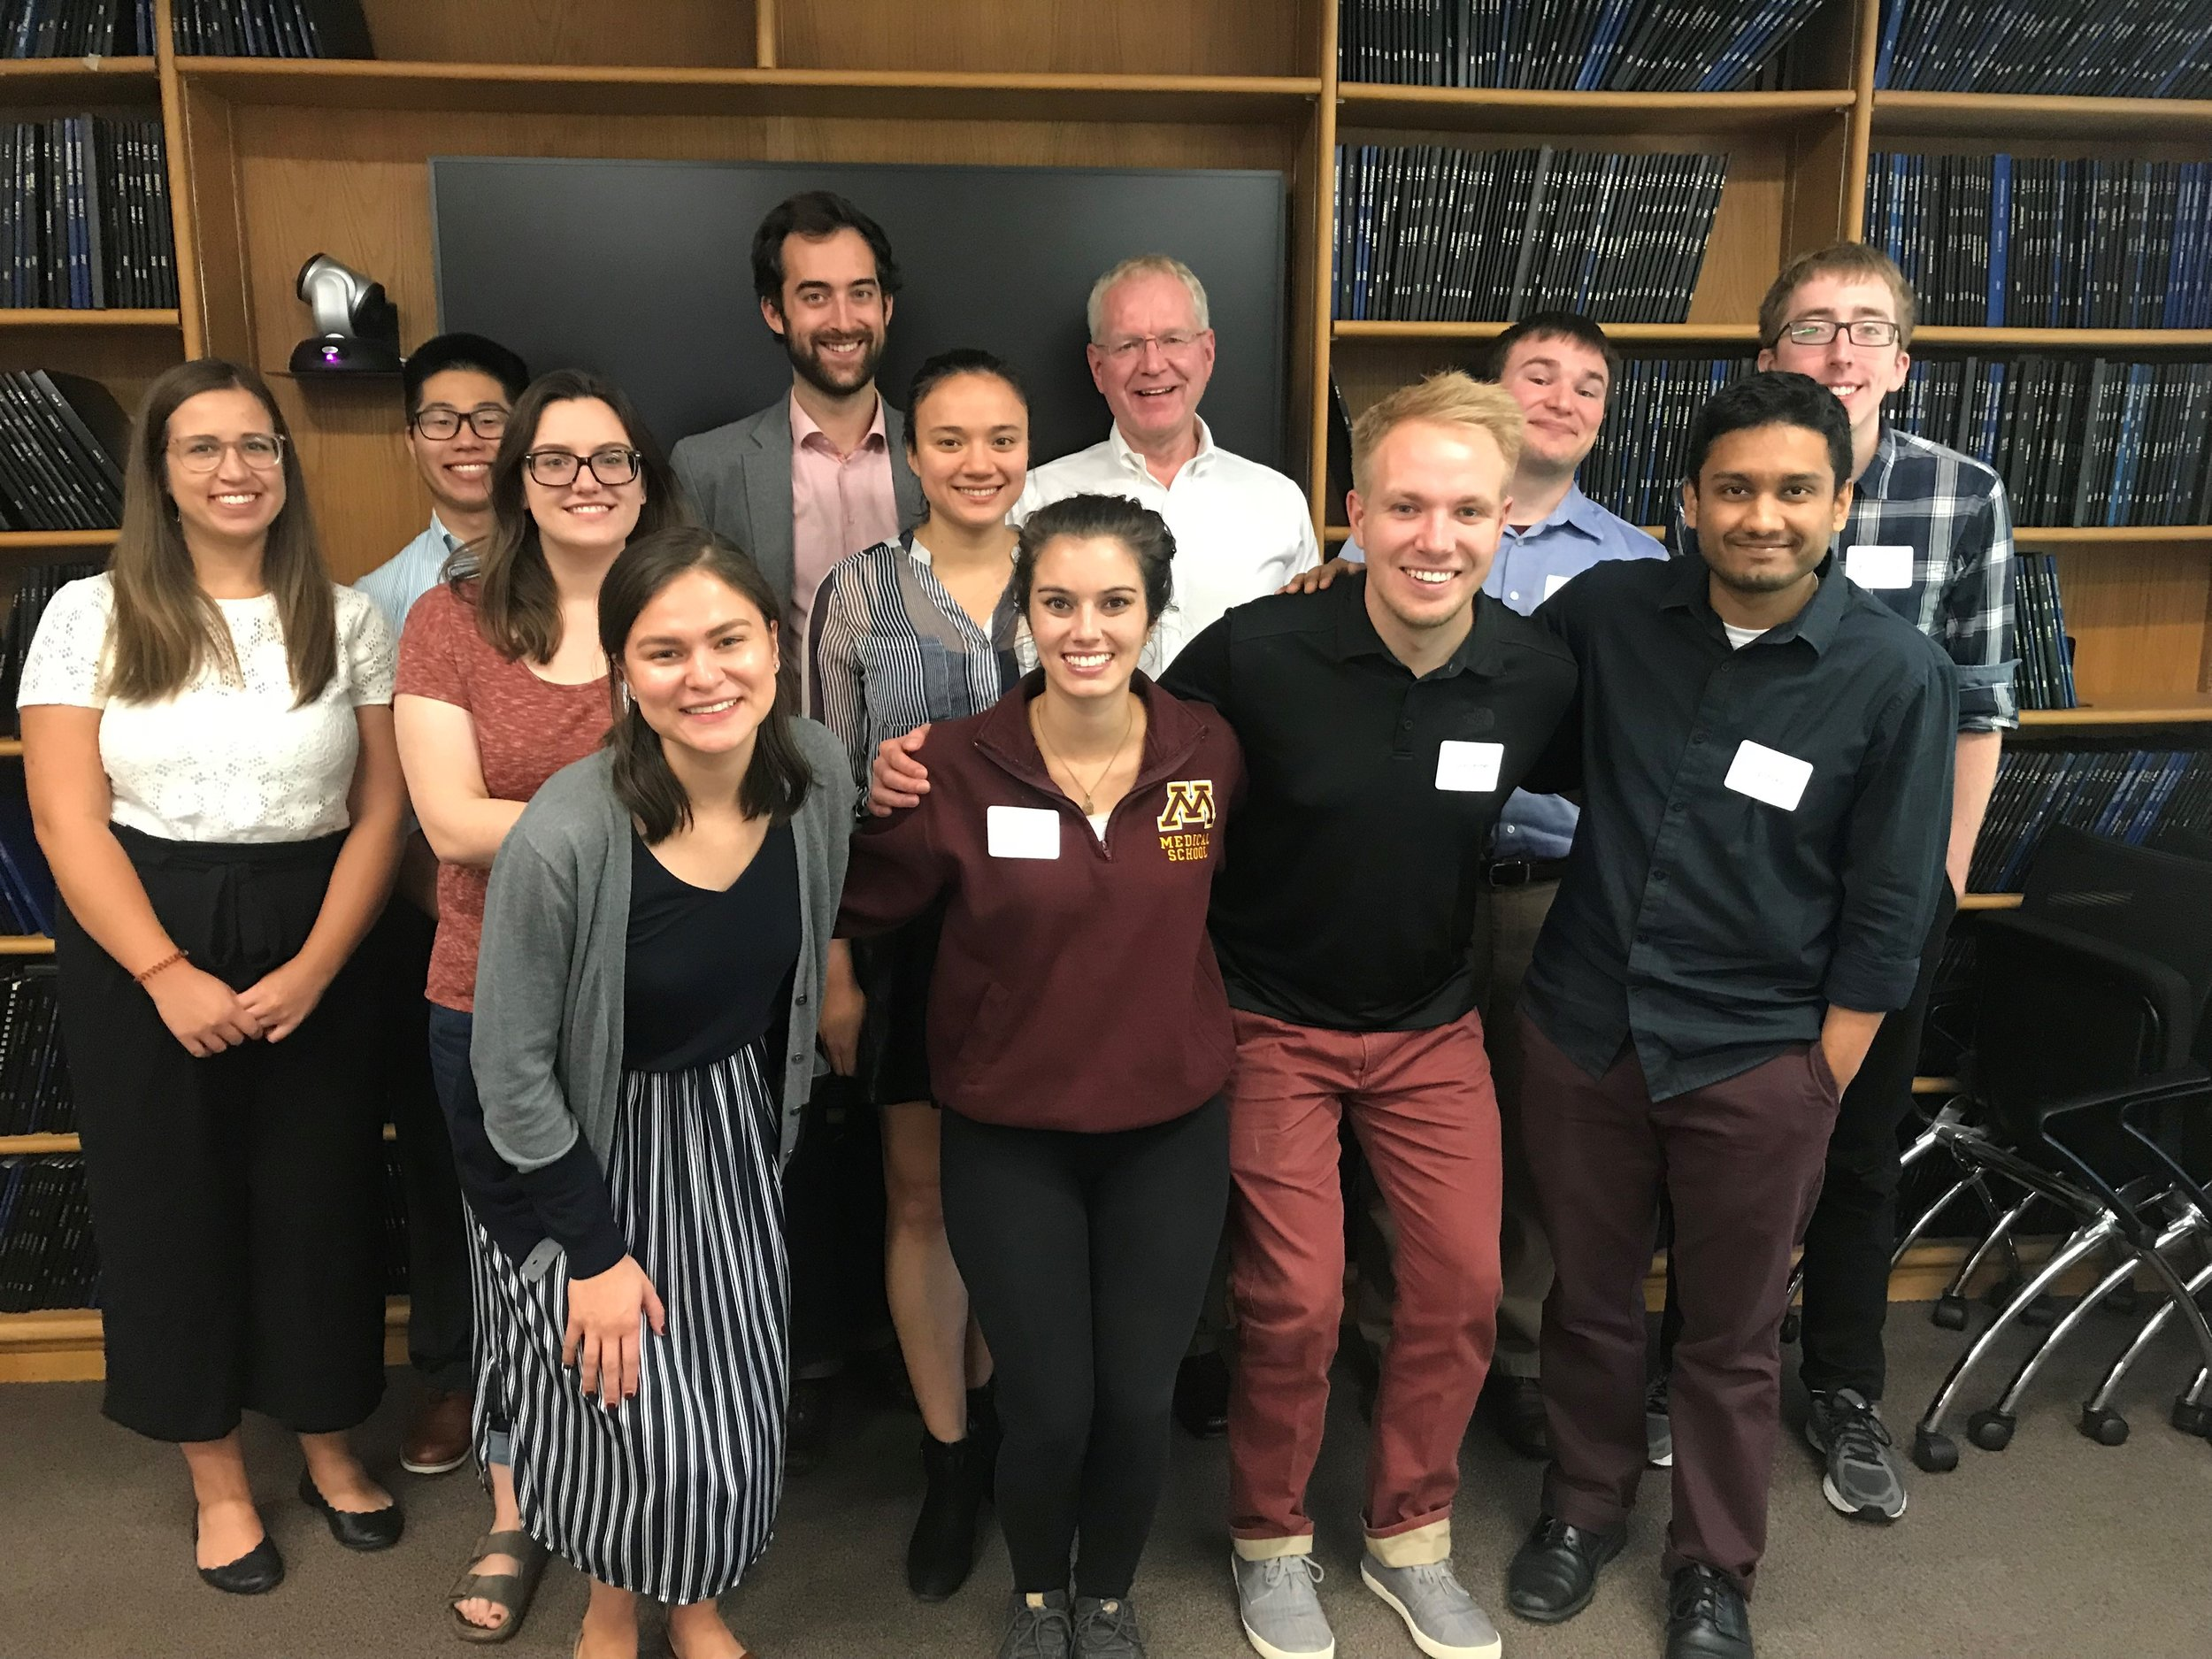 Public Health Advocacy Fellowship - The Dr. Pete Dehnel Public Health Advocacy Fellowship creates a connection between medicine and public health for medical students by offering opportunities for students to engage in local public health advocacy activities.